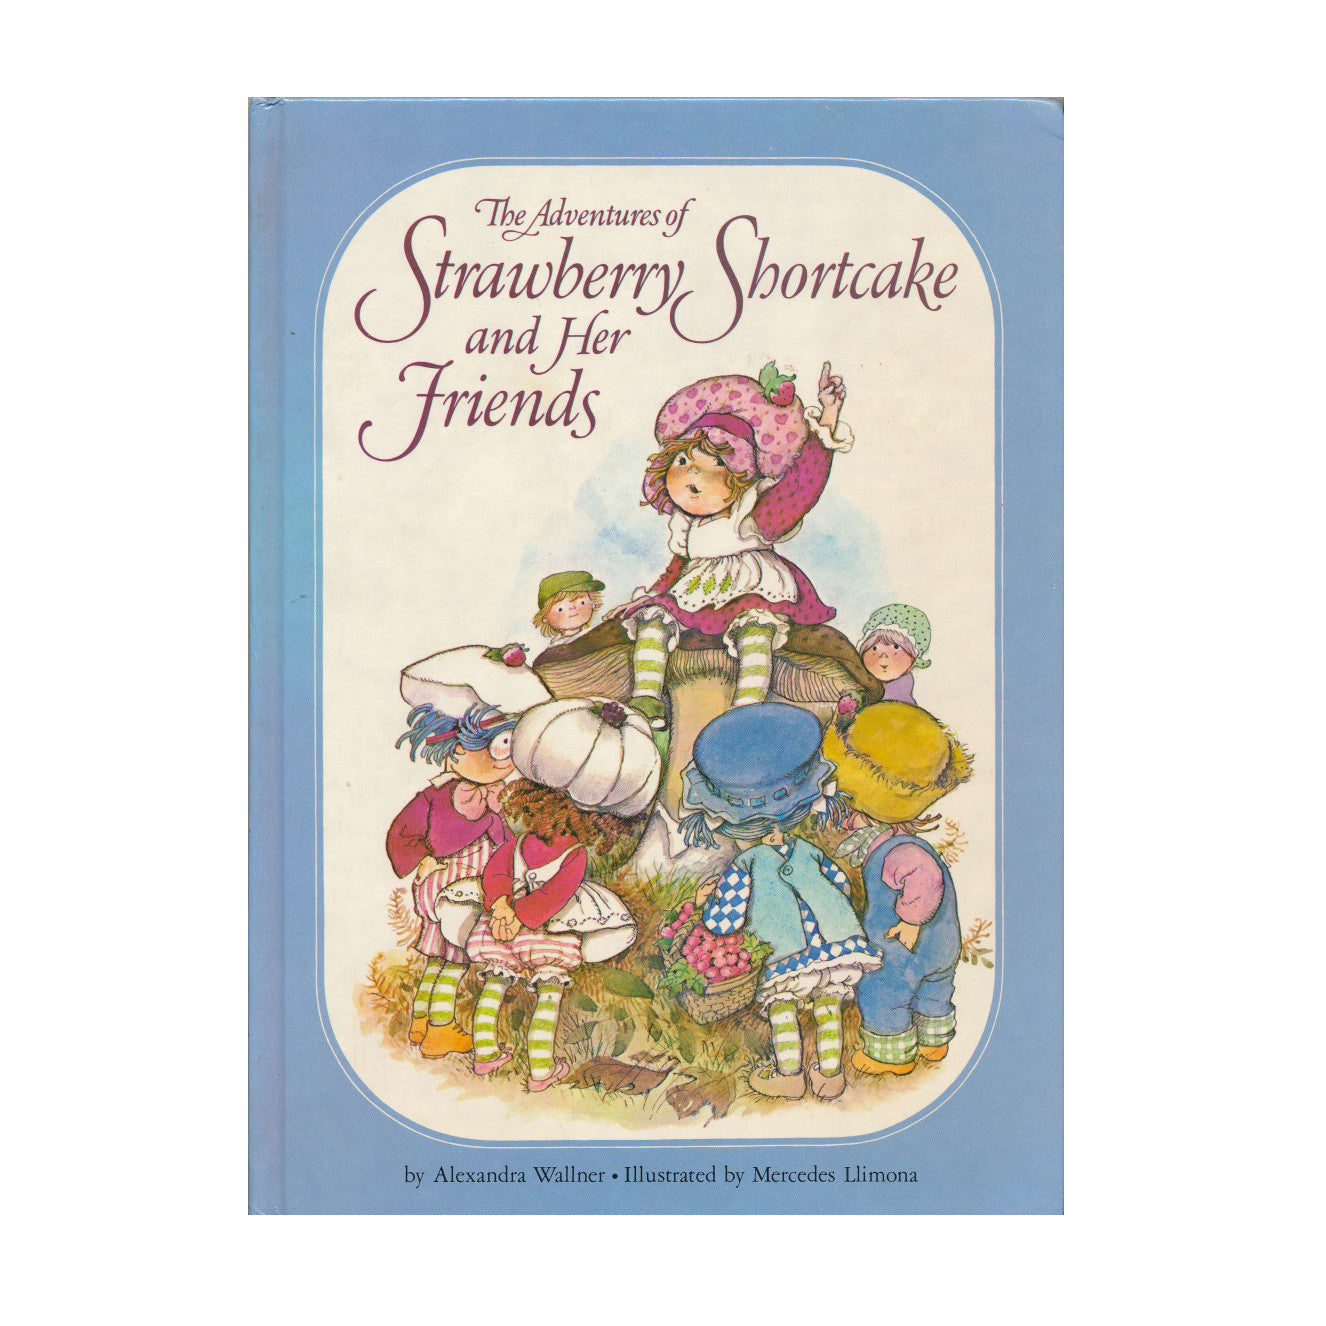 The Adventures of Strawberry Shortcake and Her Friends book